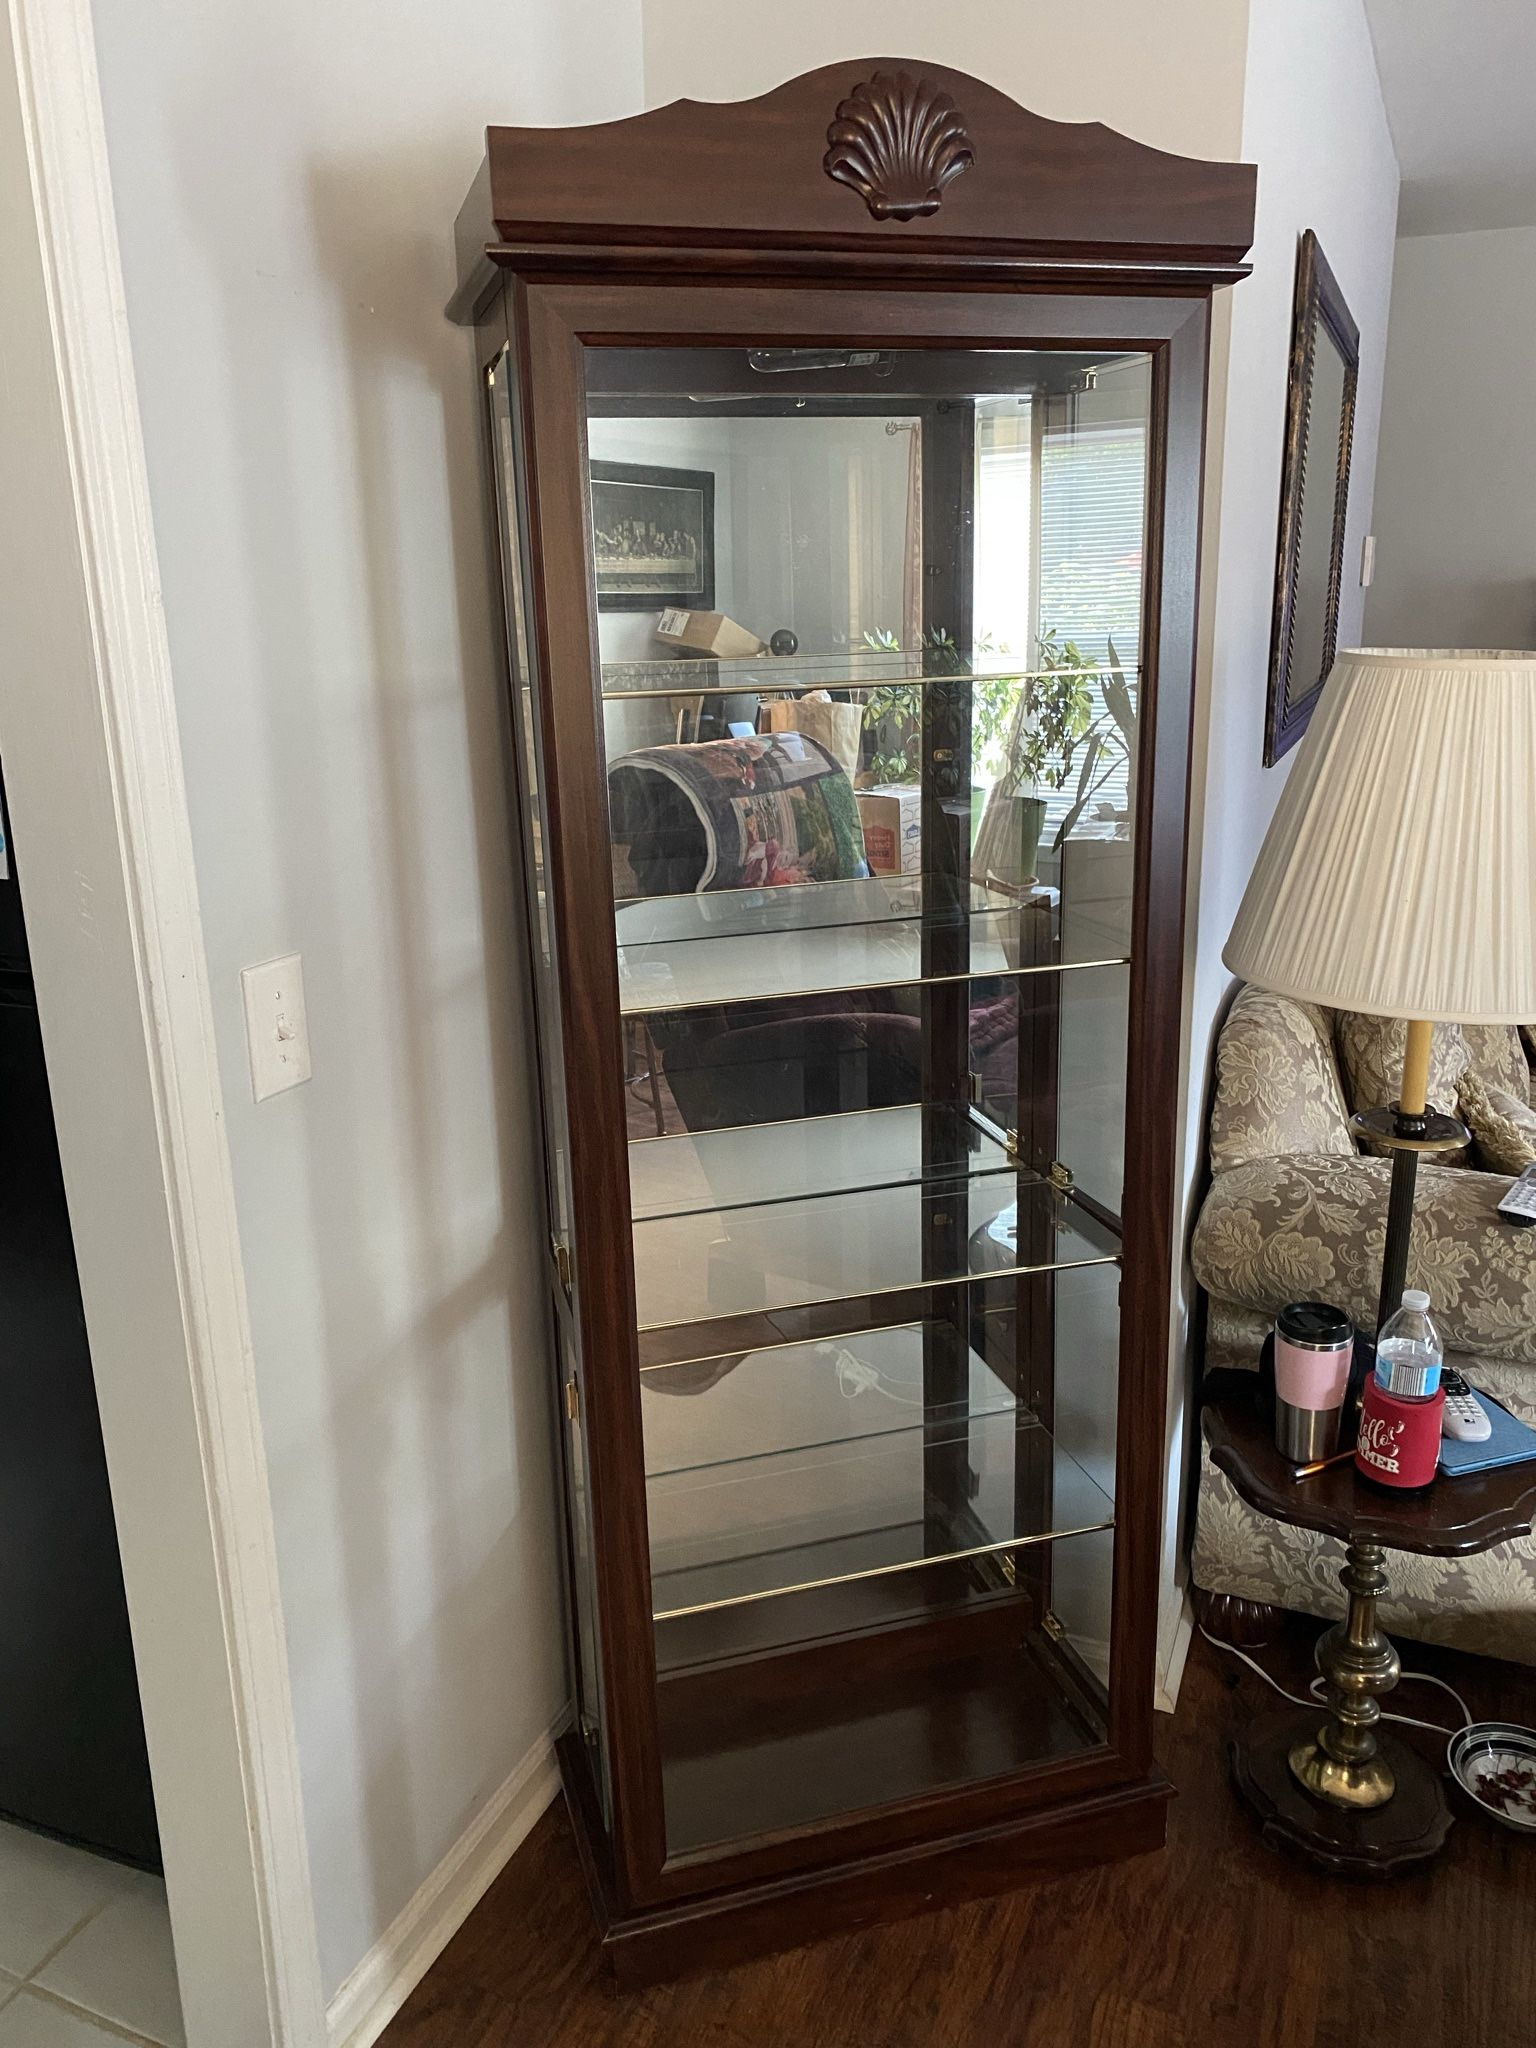 Living Room Set: End Table, Coffee Table, & China Cabinet